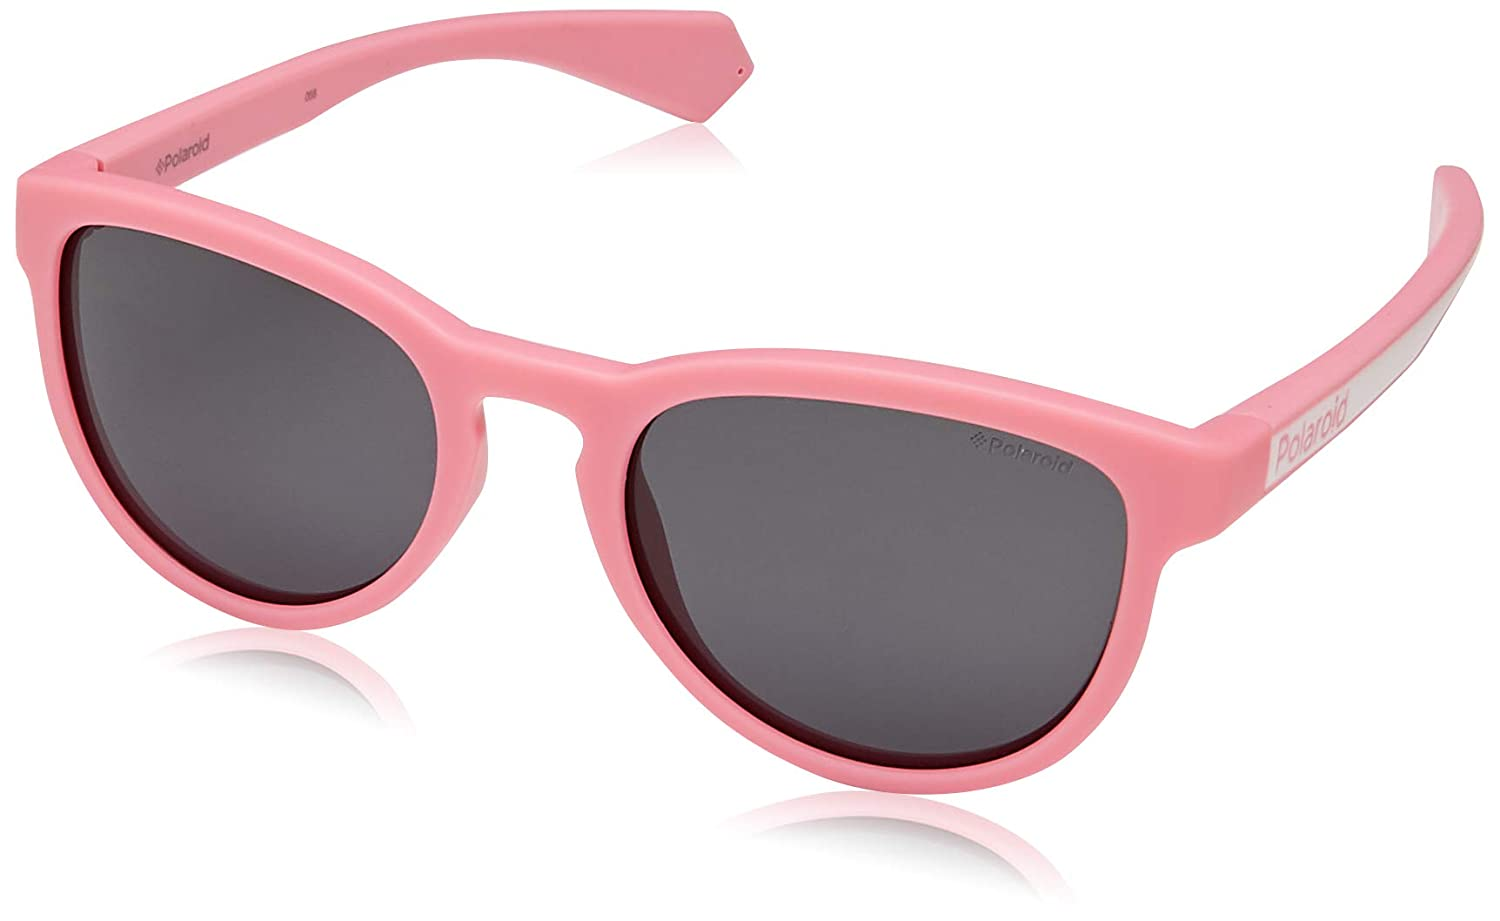 Amazon.com: Gafas de sol polares PLD 8030 35J M9, color rosa ...